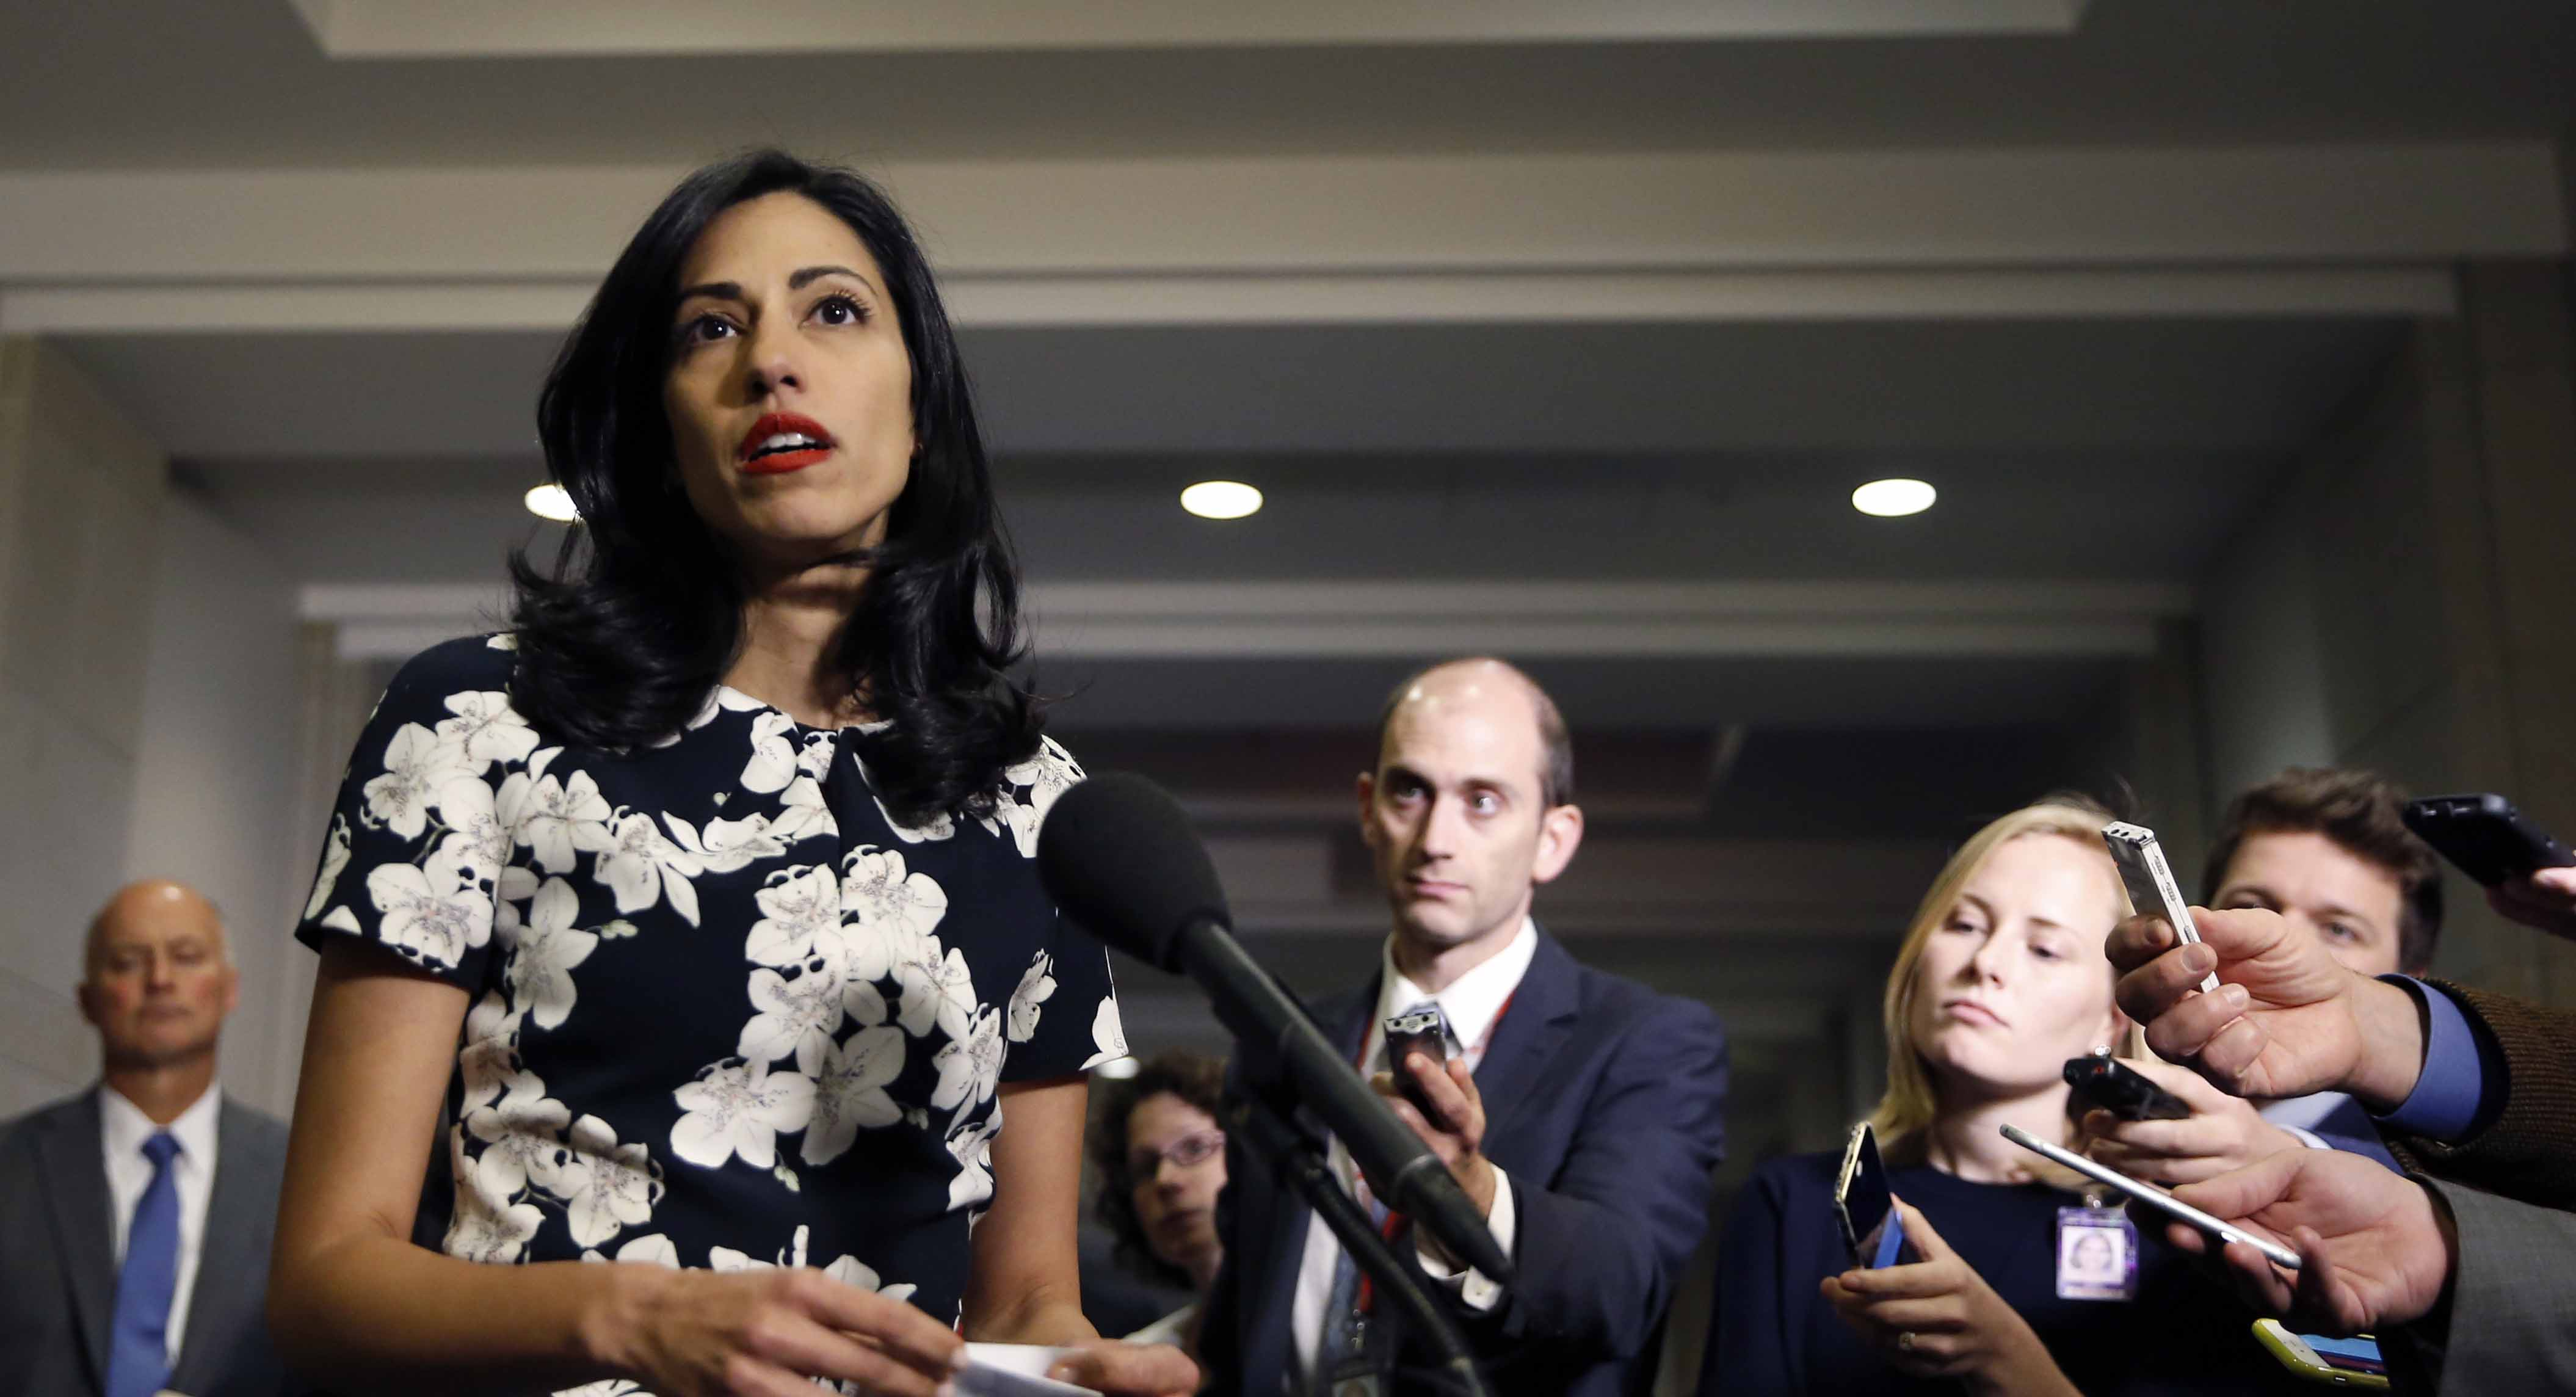 State Department to release Huma Abedin email trove  POLITICO